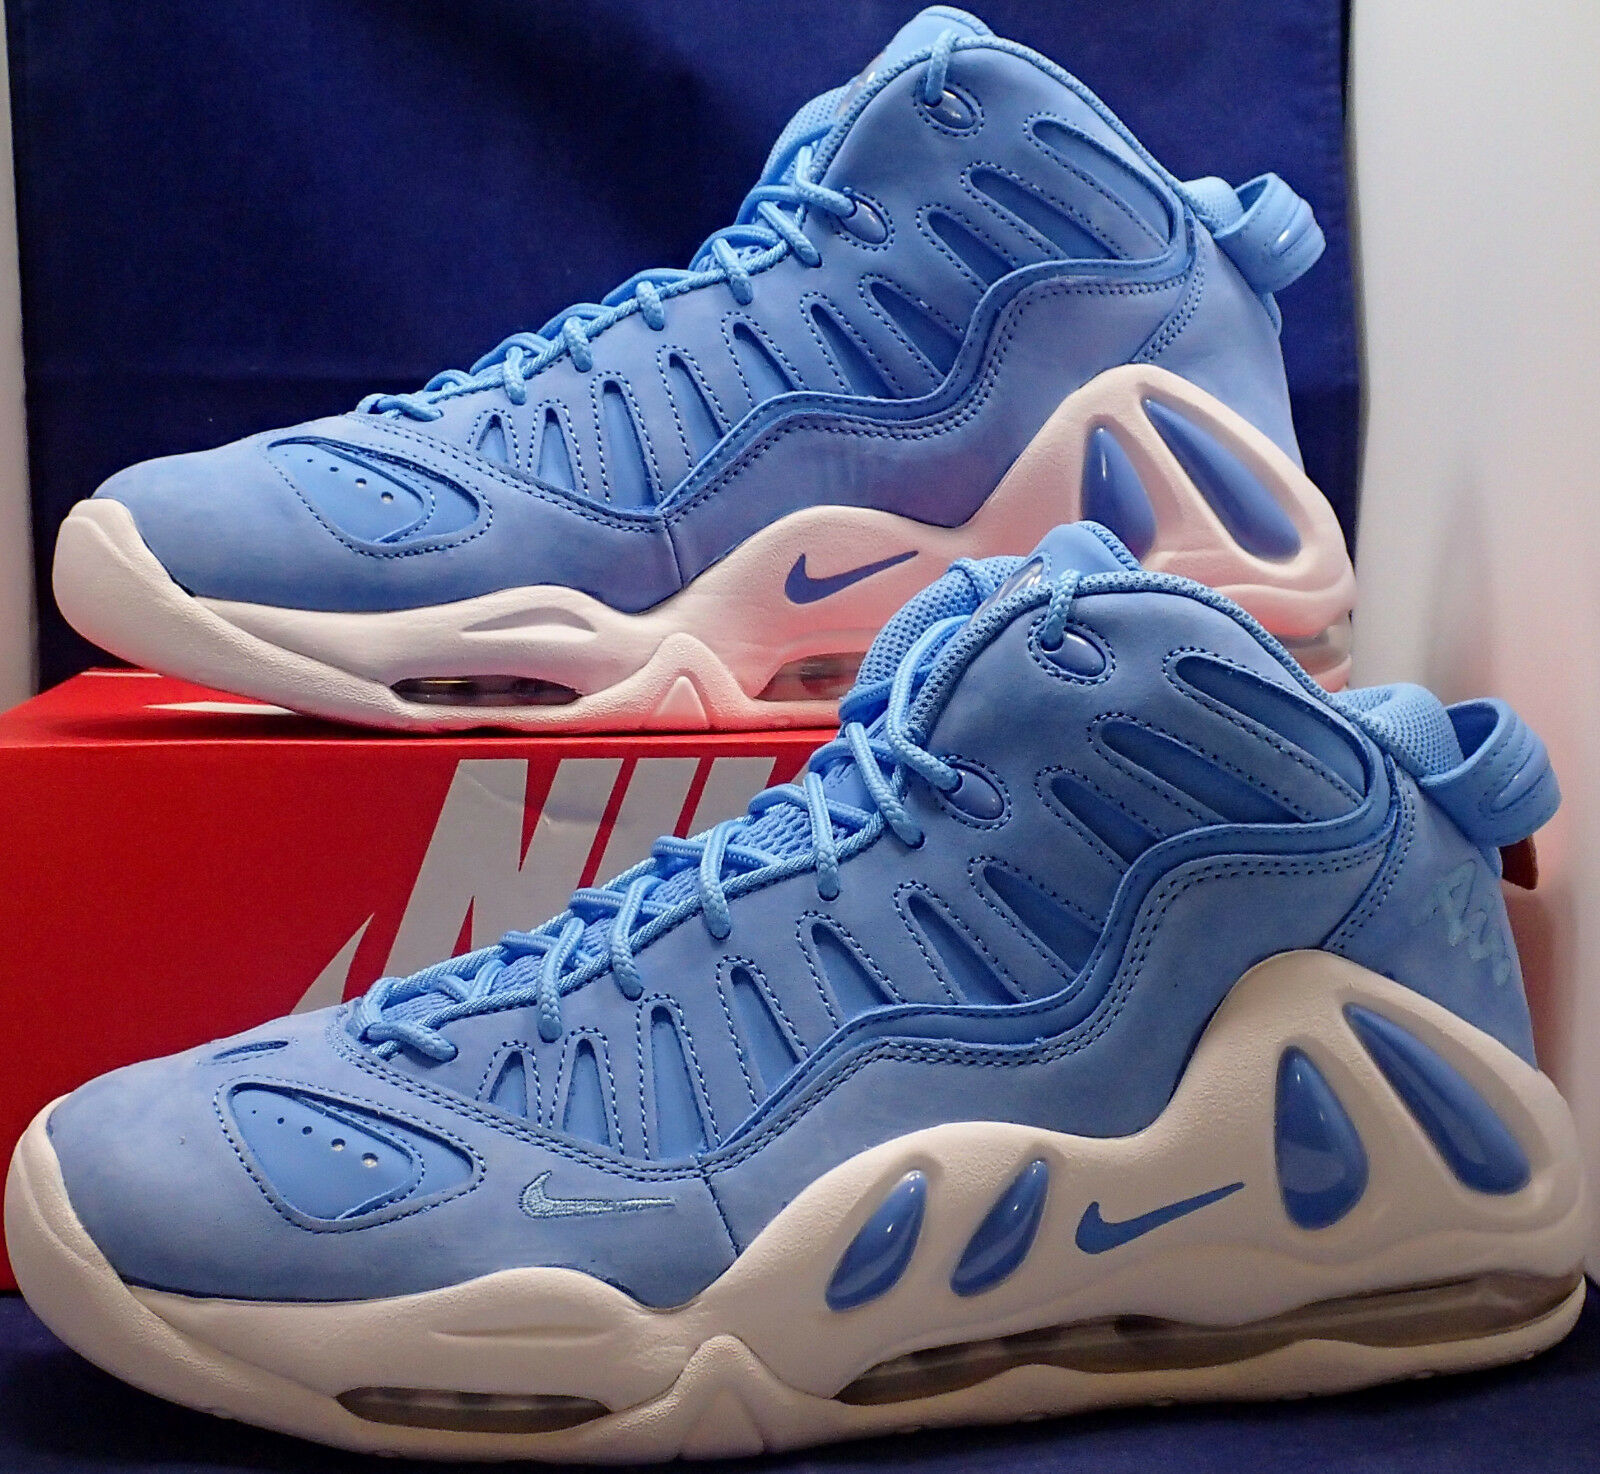 Nike Air Max Uptempo 97 AS QS University Blue UNC Pippen SZ 9.5 ( 922933-400 )